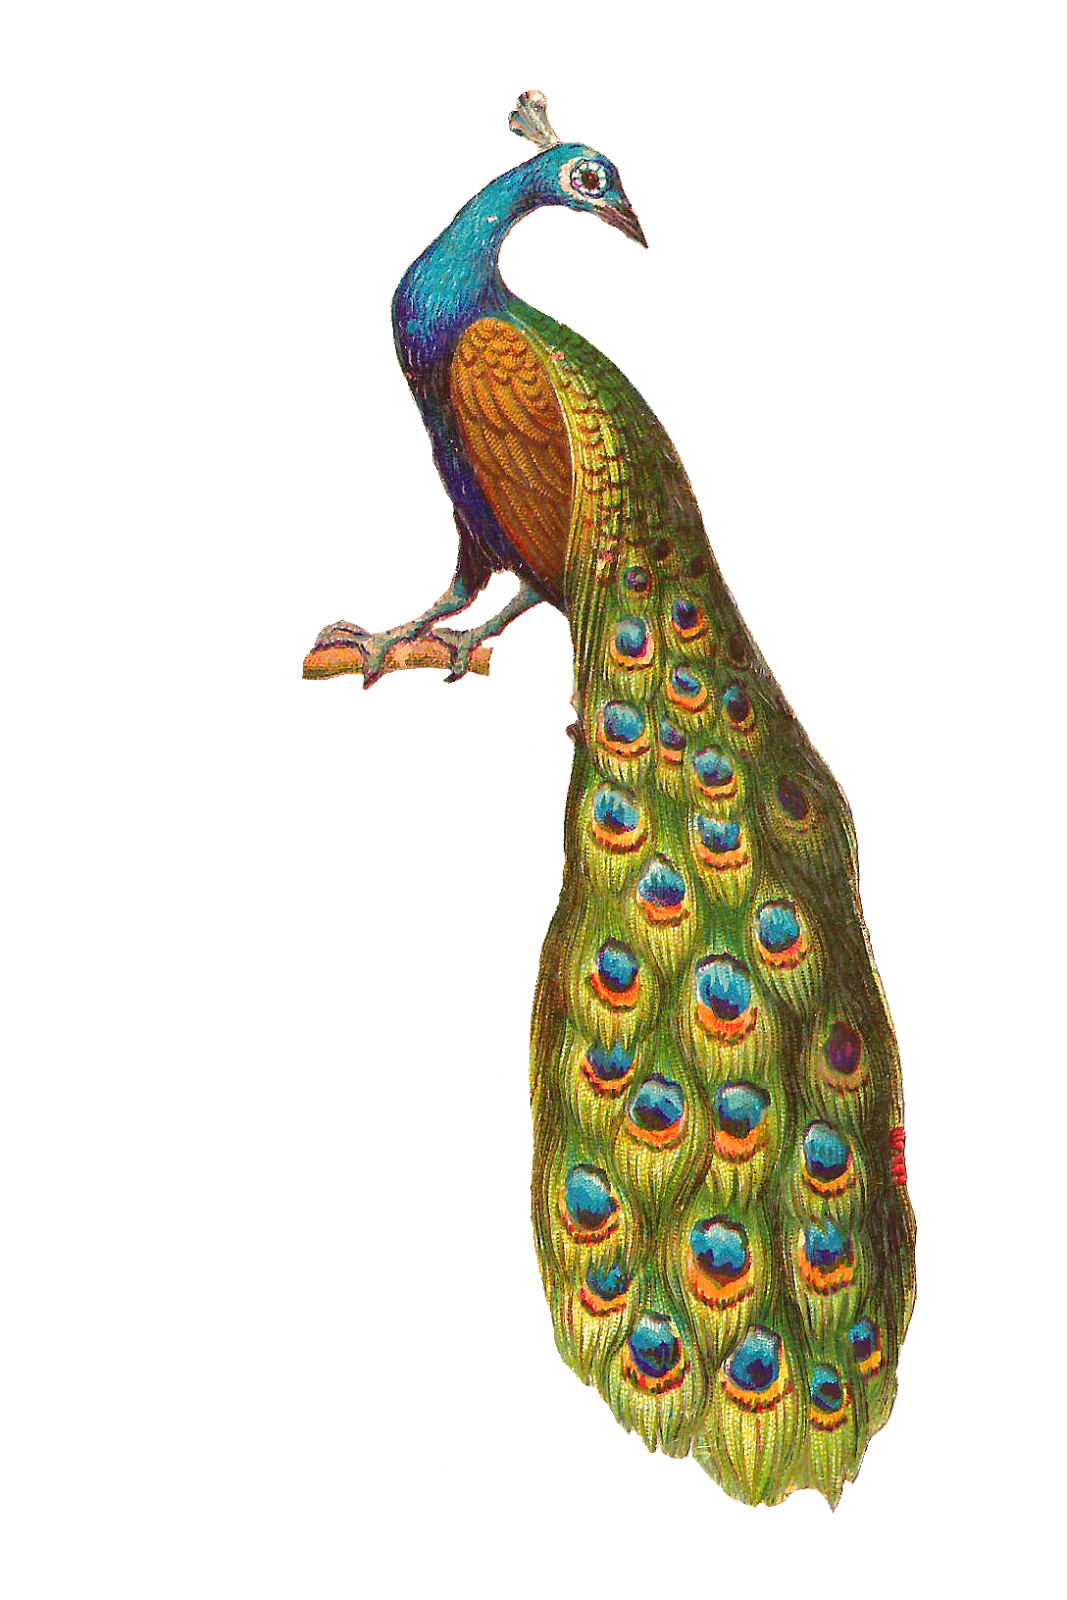 peacock png clipart and images #20817